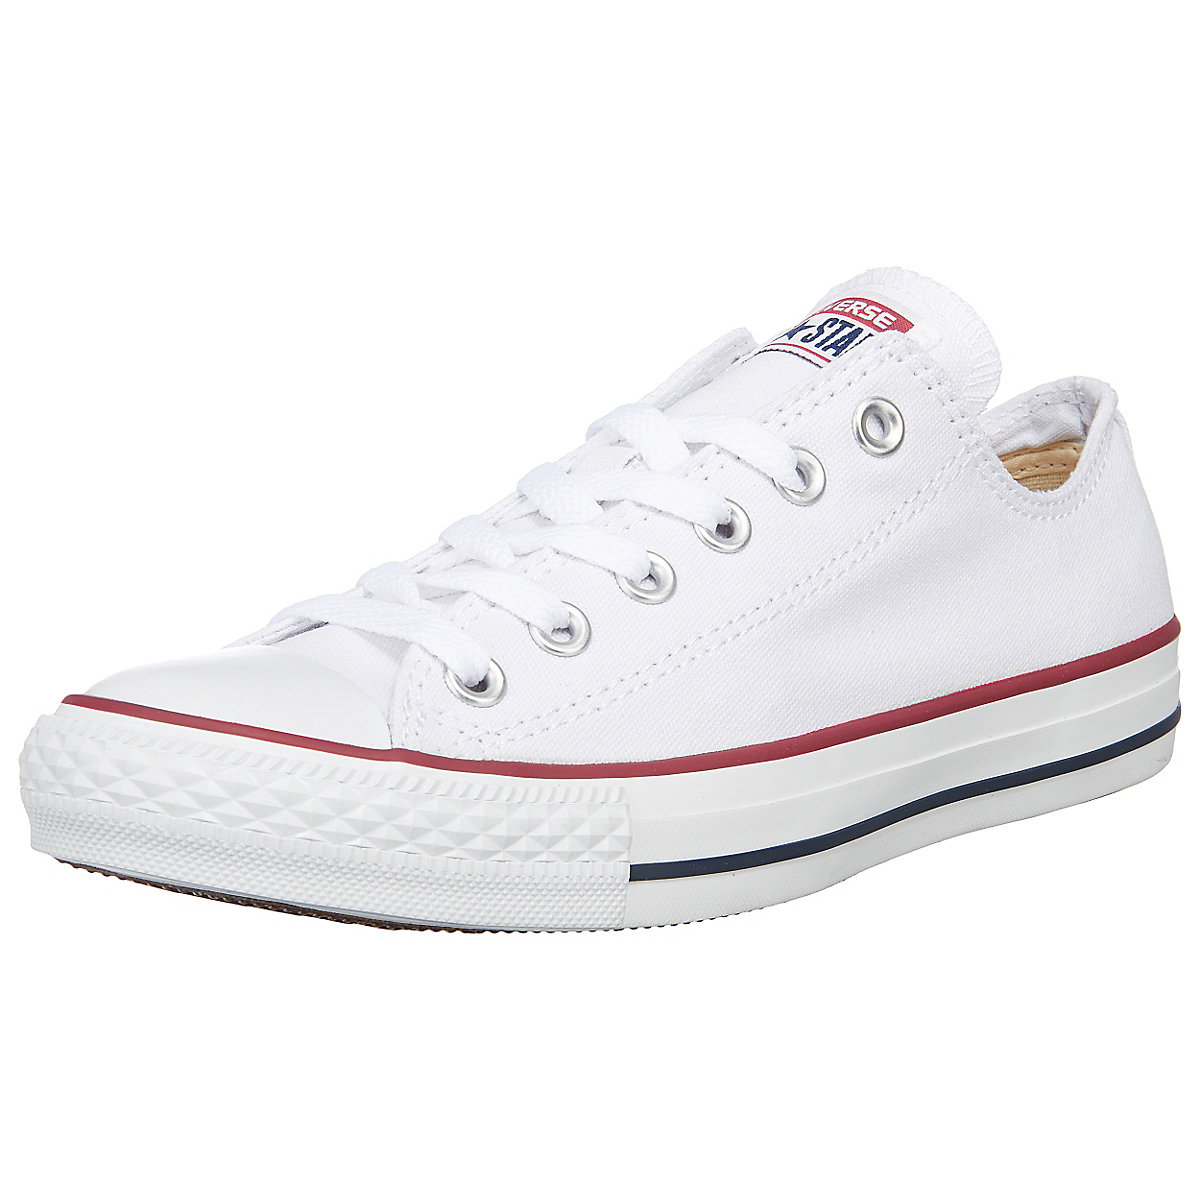 converse chuck taylor all star ox sneakers low wei. Black Bedroom Furniture Sets. Home Design Ideas